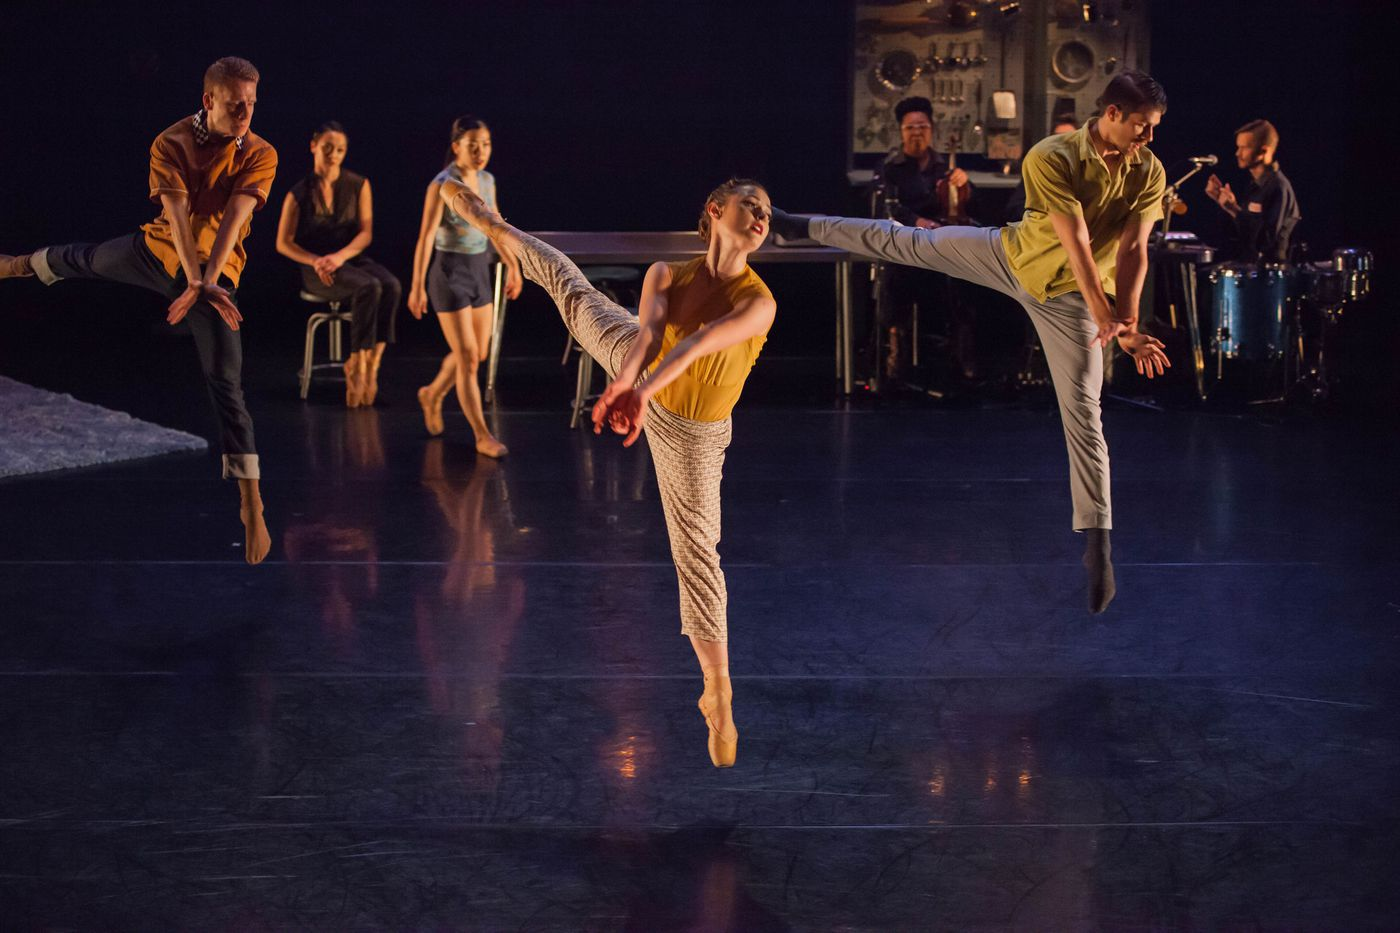 BalletX heats up the summer with 3 premieres and live music